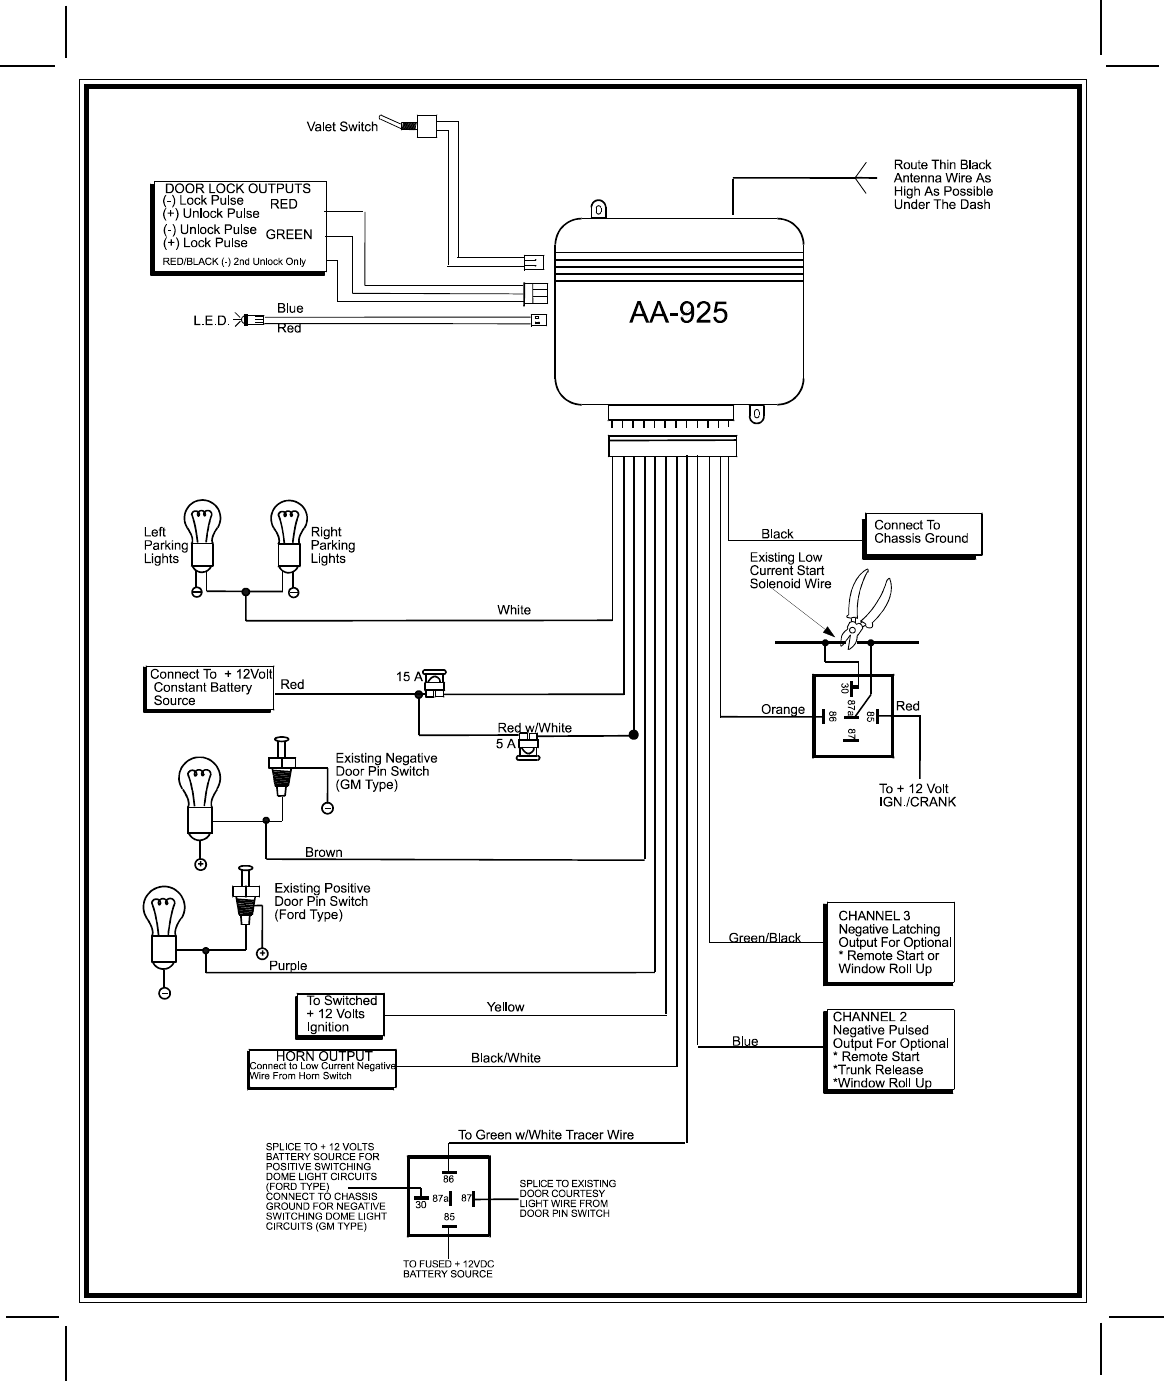 imetrik car alarm wiring diagrams